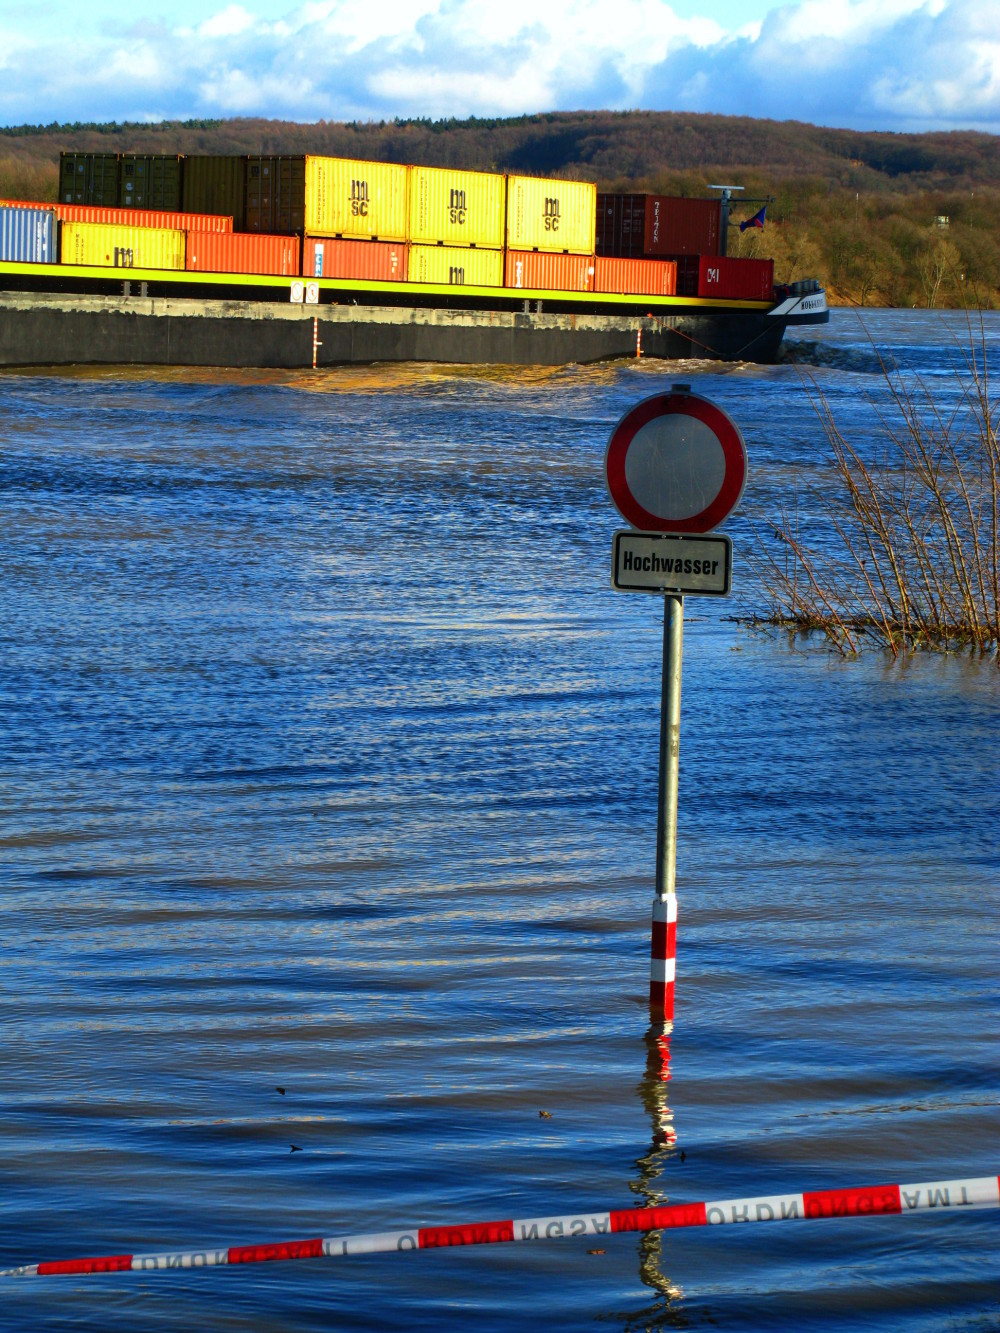 The rhine is flooding